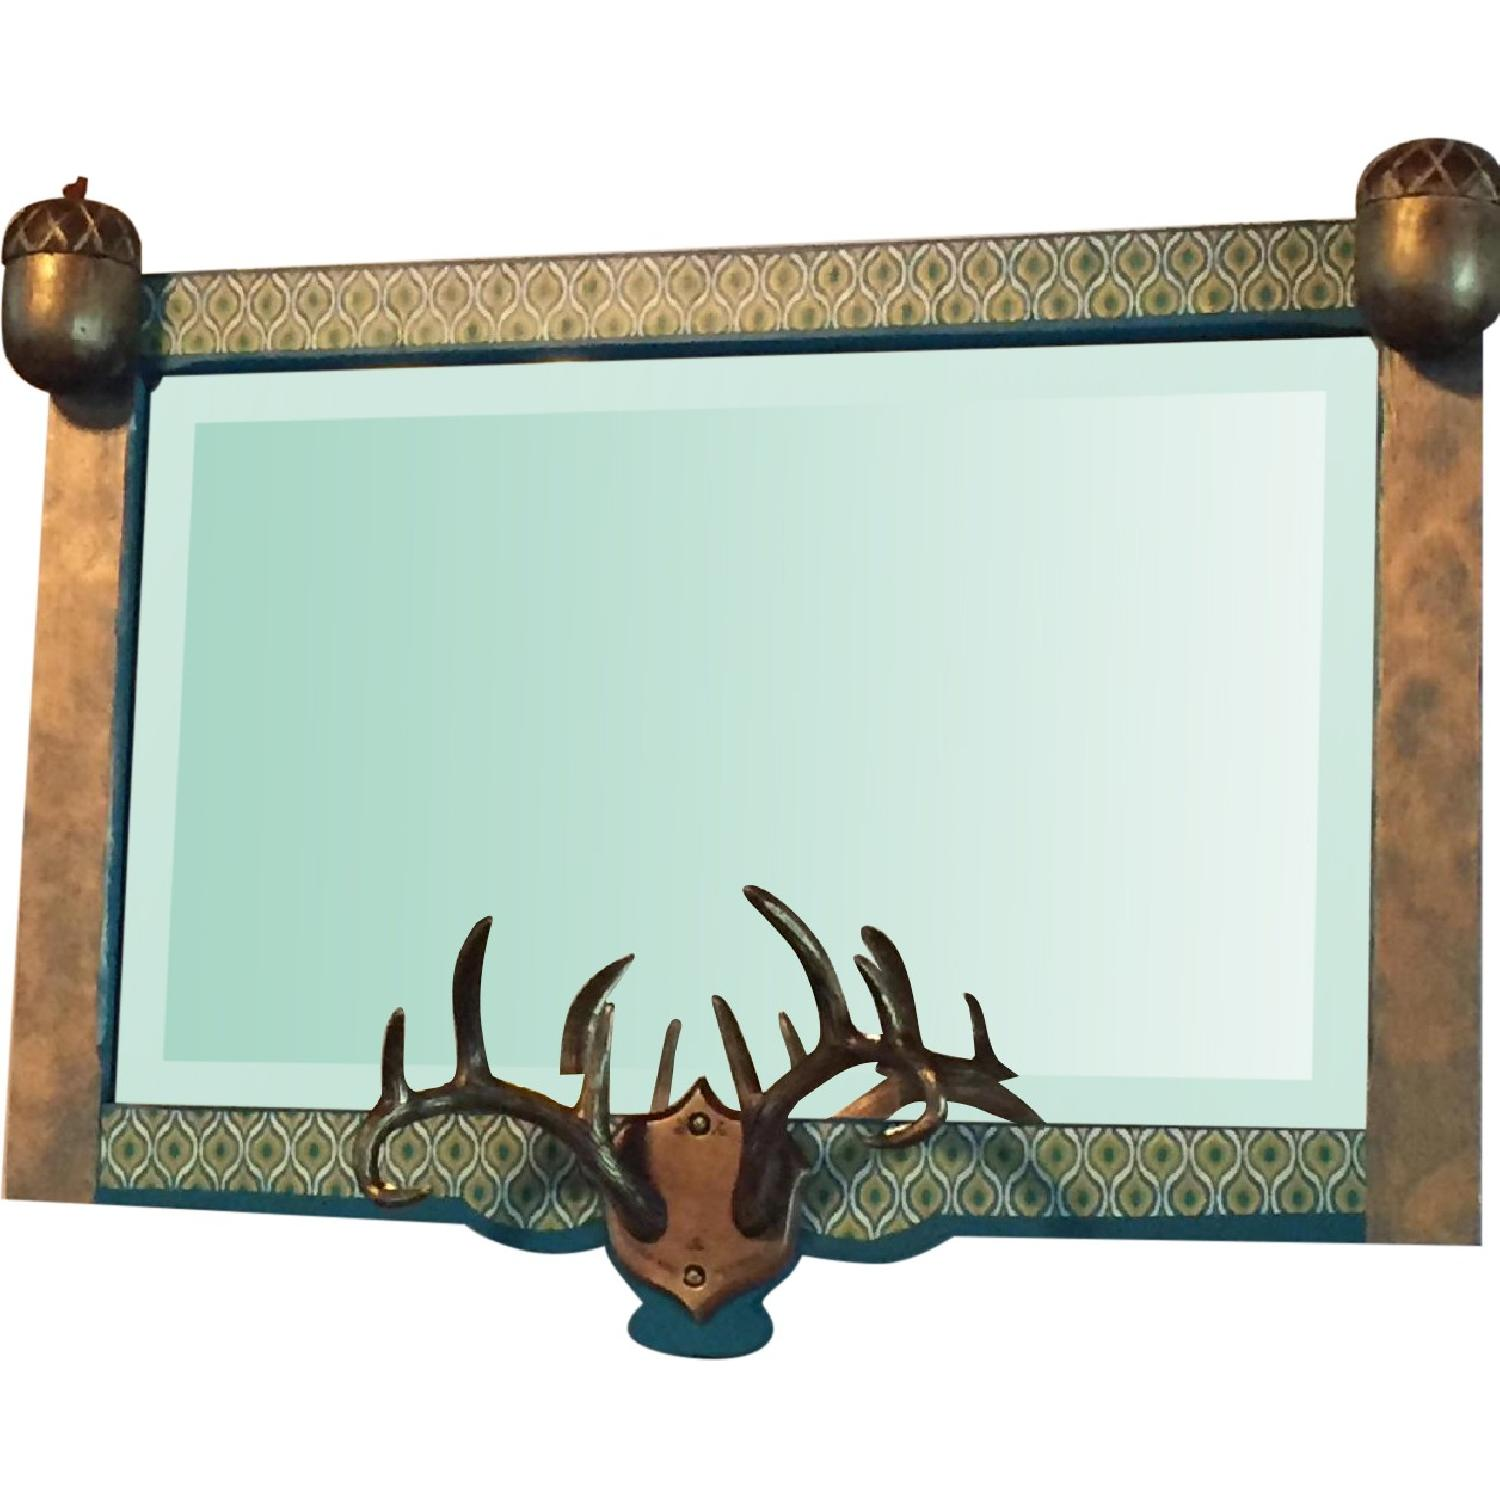 Rooms About You Design Studio Woodland Trophy Mirror - image-0